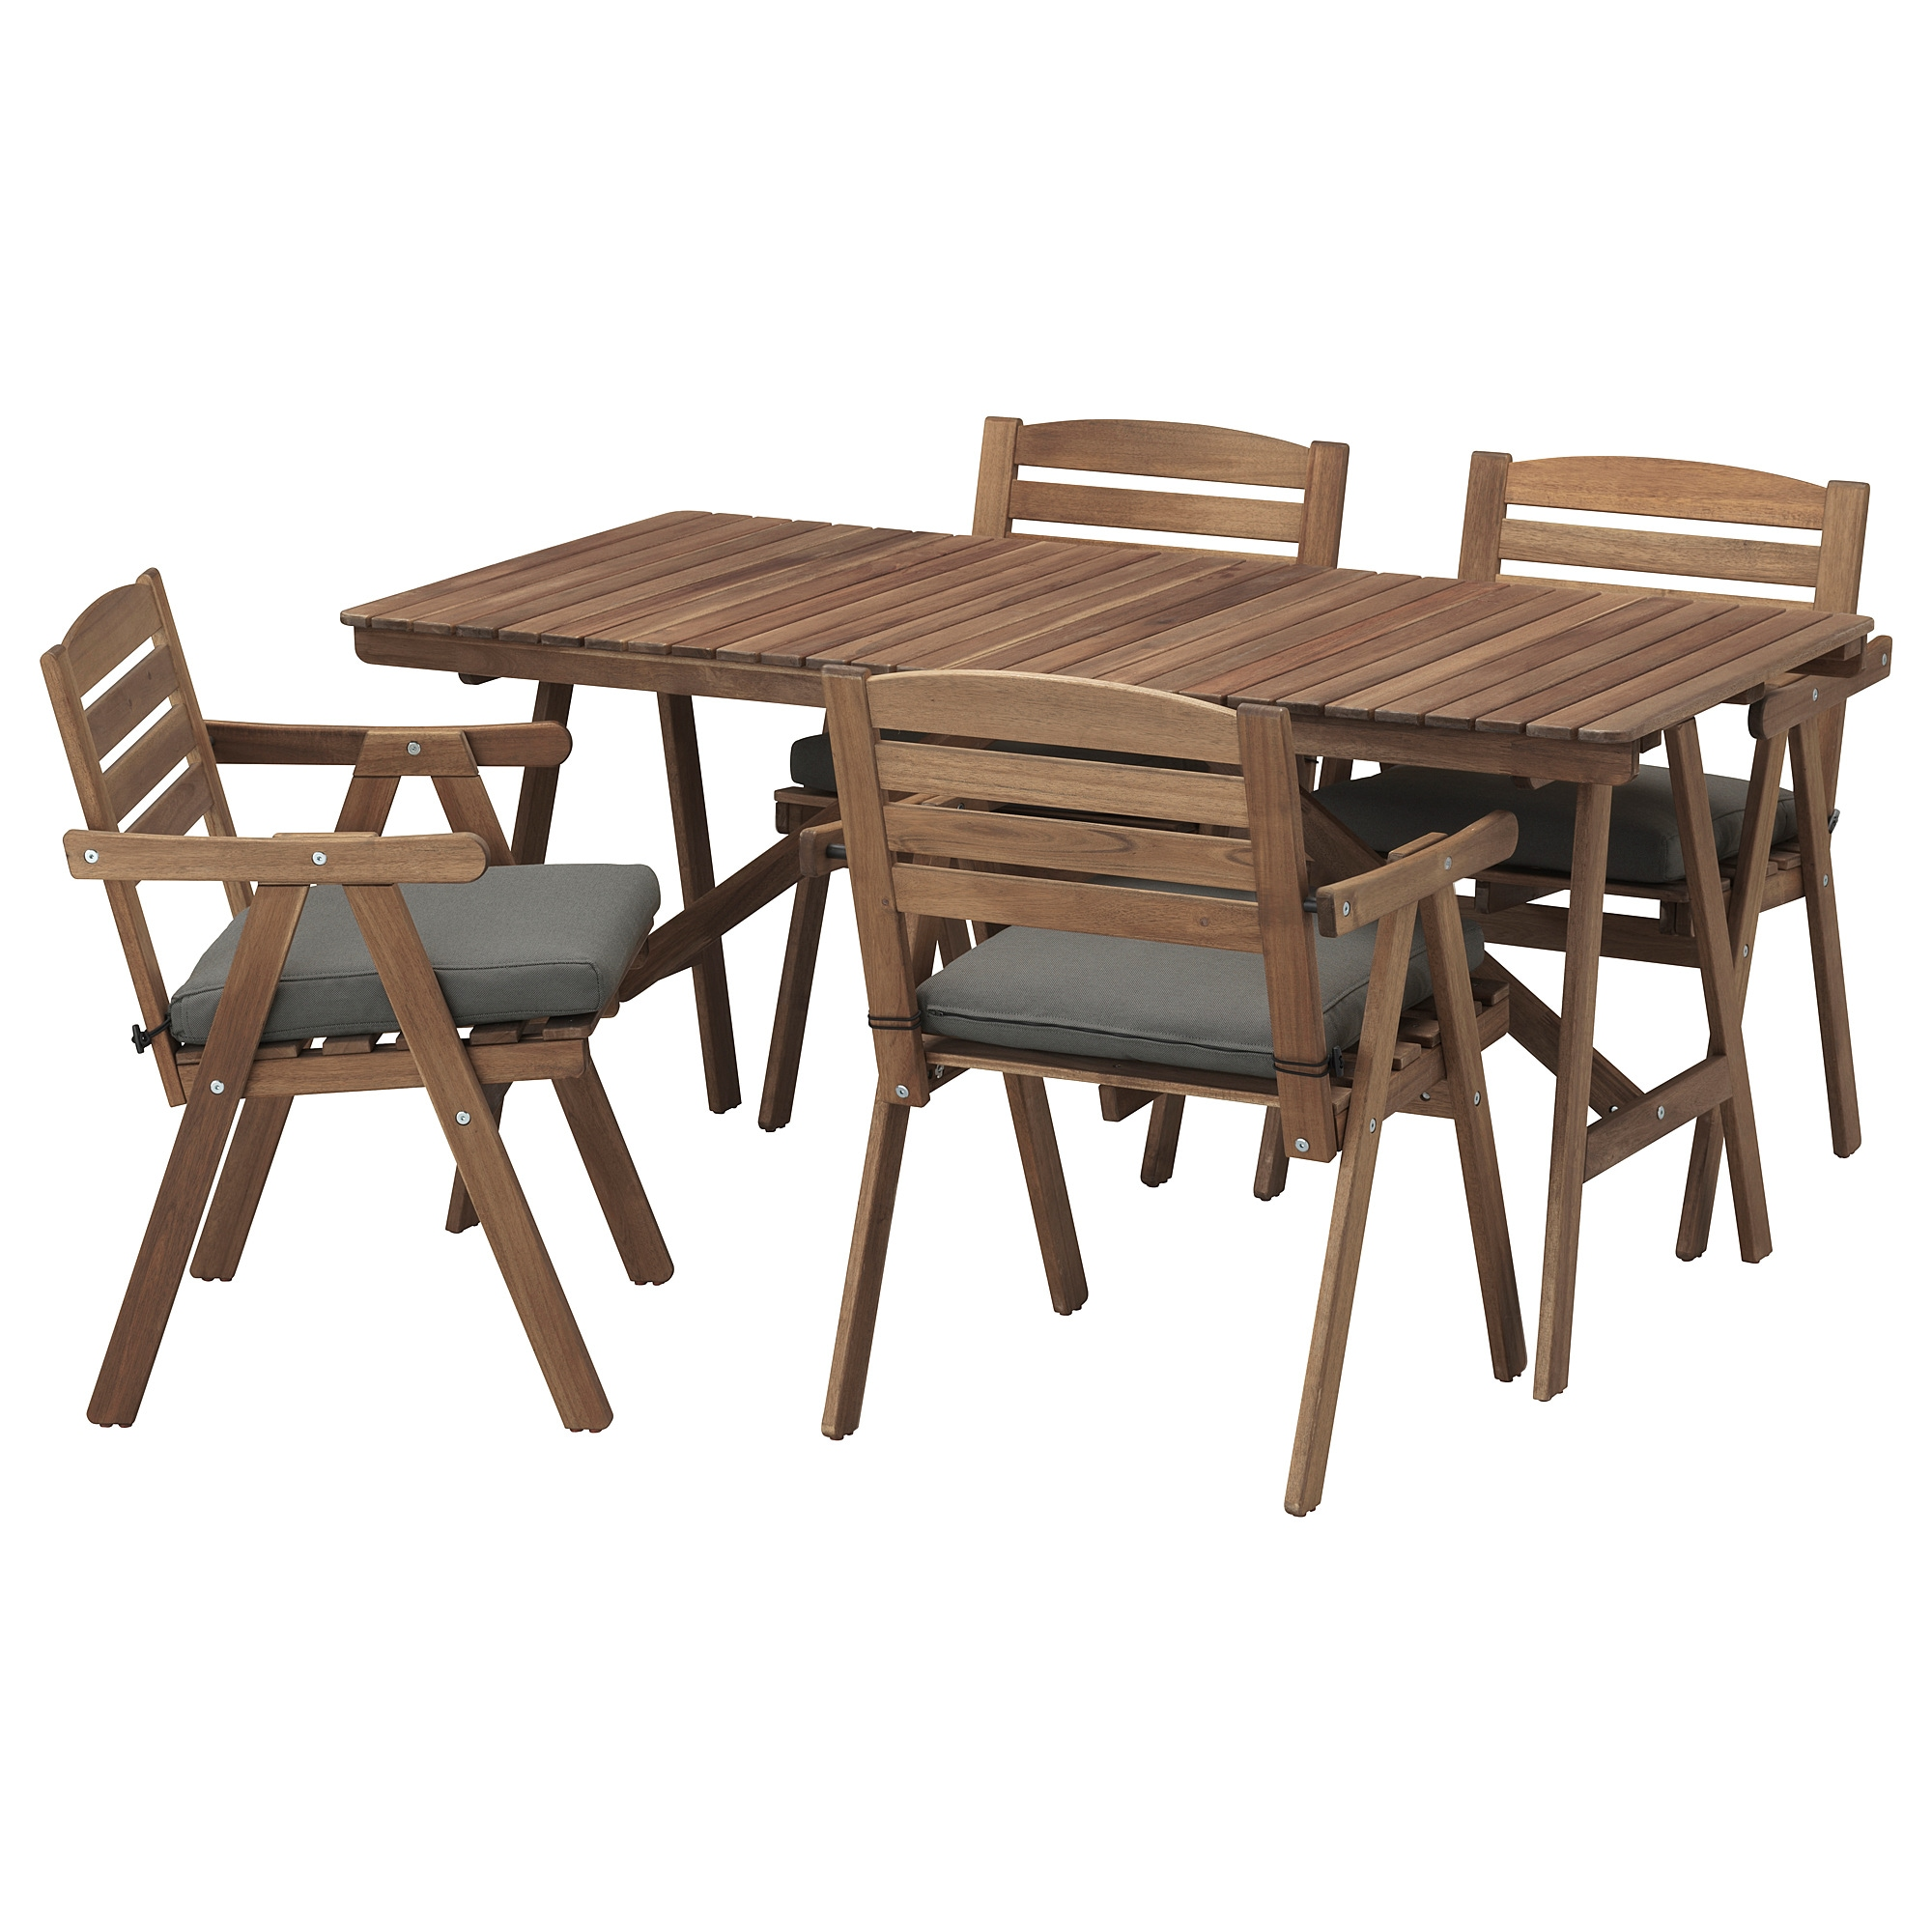 IKEA FALHOLMEN Table+4 Chairs W Armrests, Outdoor